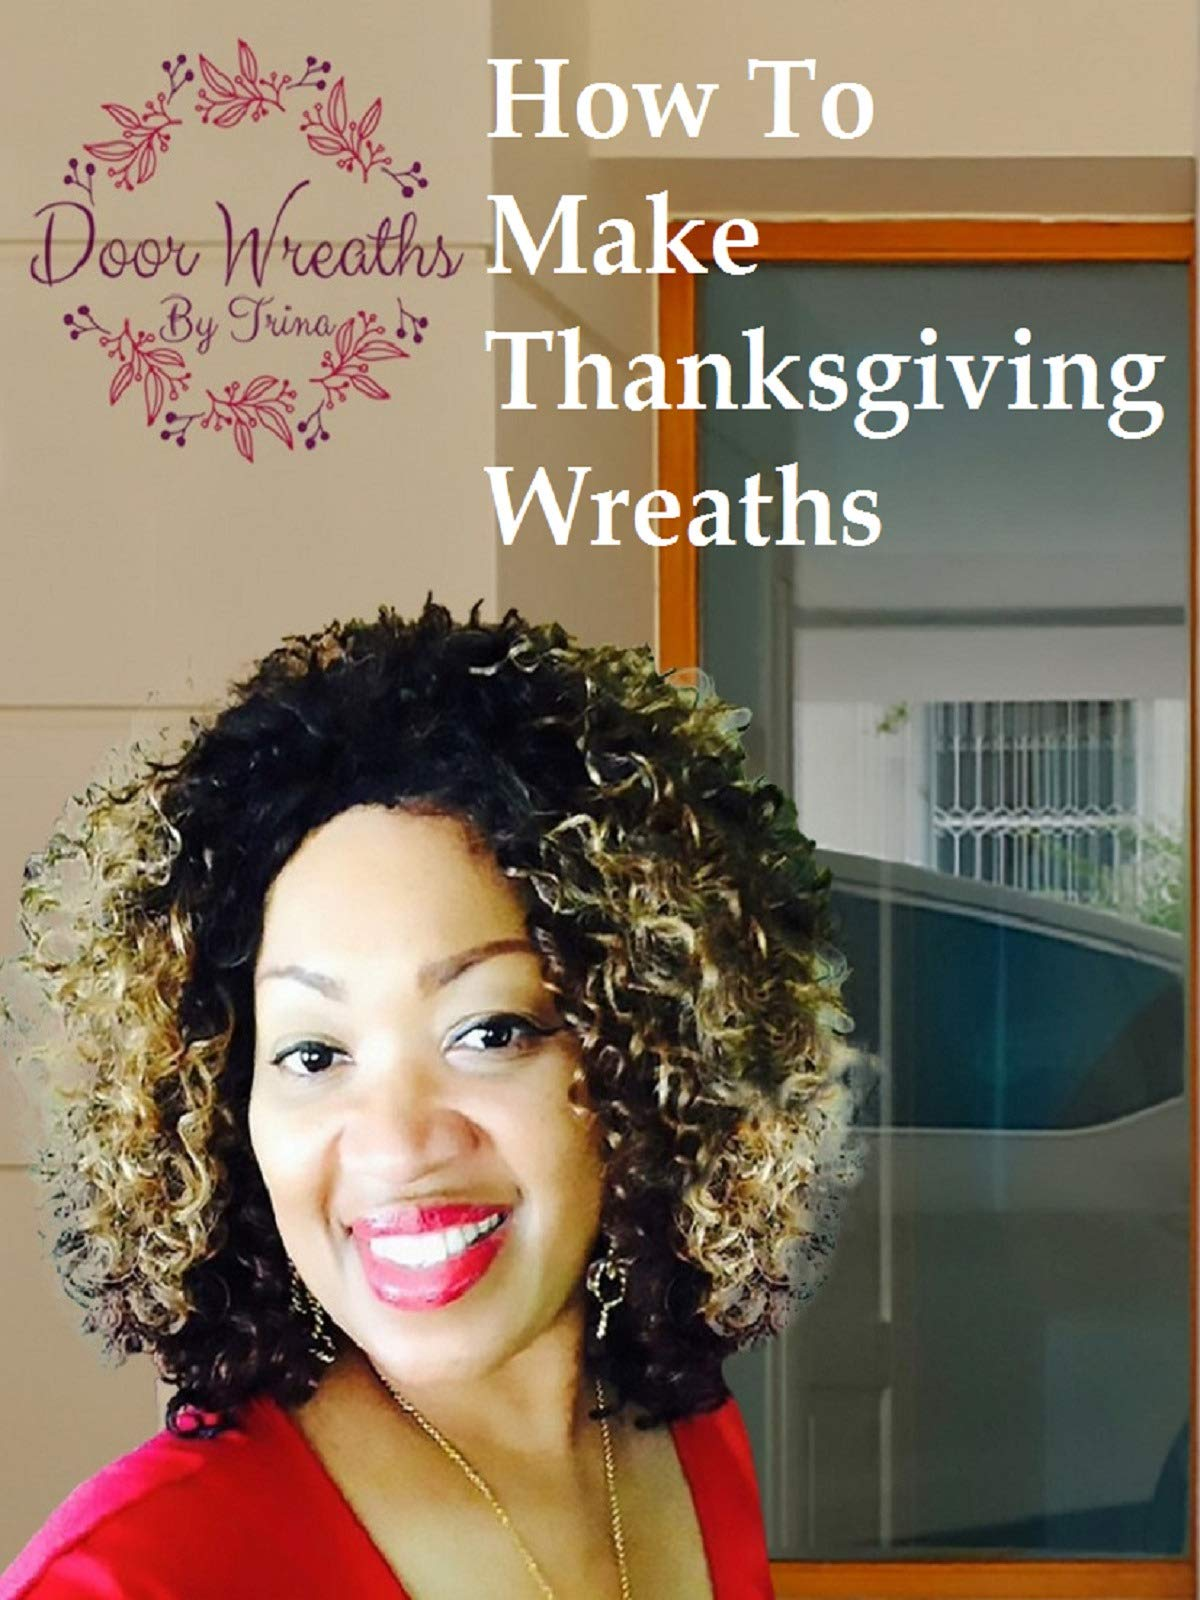 Door Wreaths By Trina - How To Make Thanksgiving Wreaths